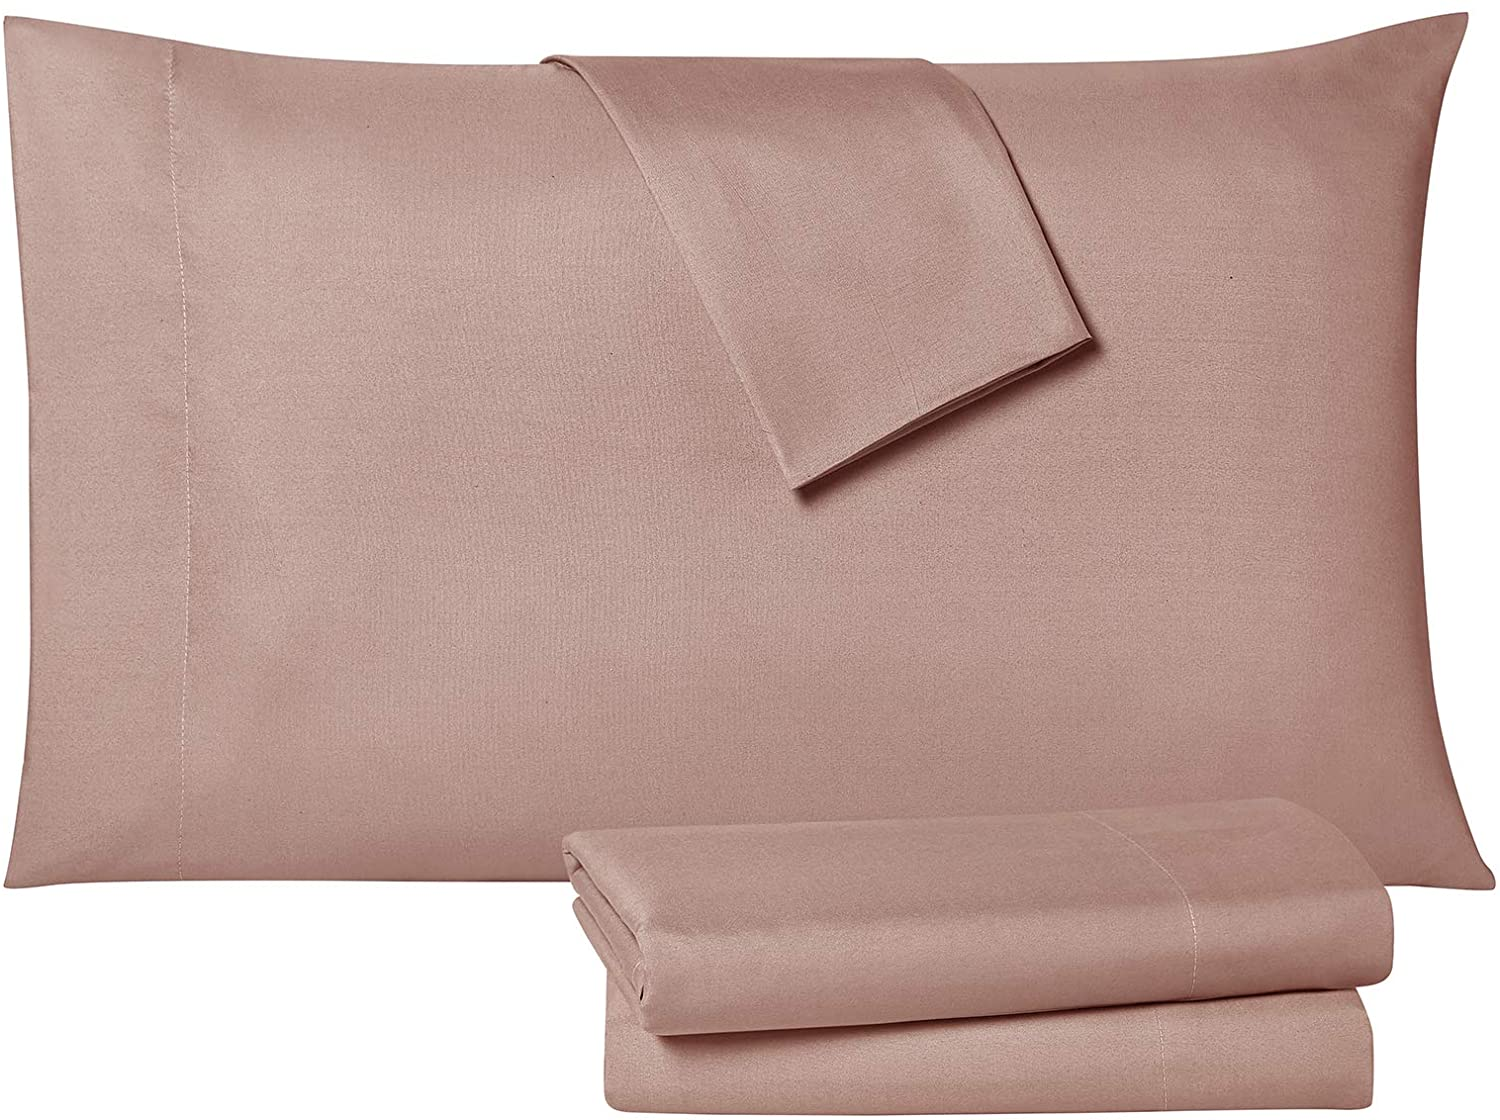 Tahari Home Modern Collection Premium Ultra Soft Lightweight Solid Sheet 6 Piece Set, Wrinkle, Stain Resistant & Hypoallergenic, Queen, Rose